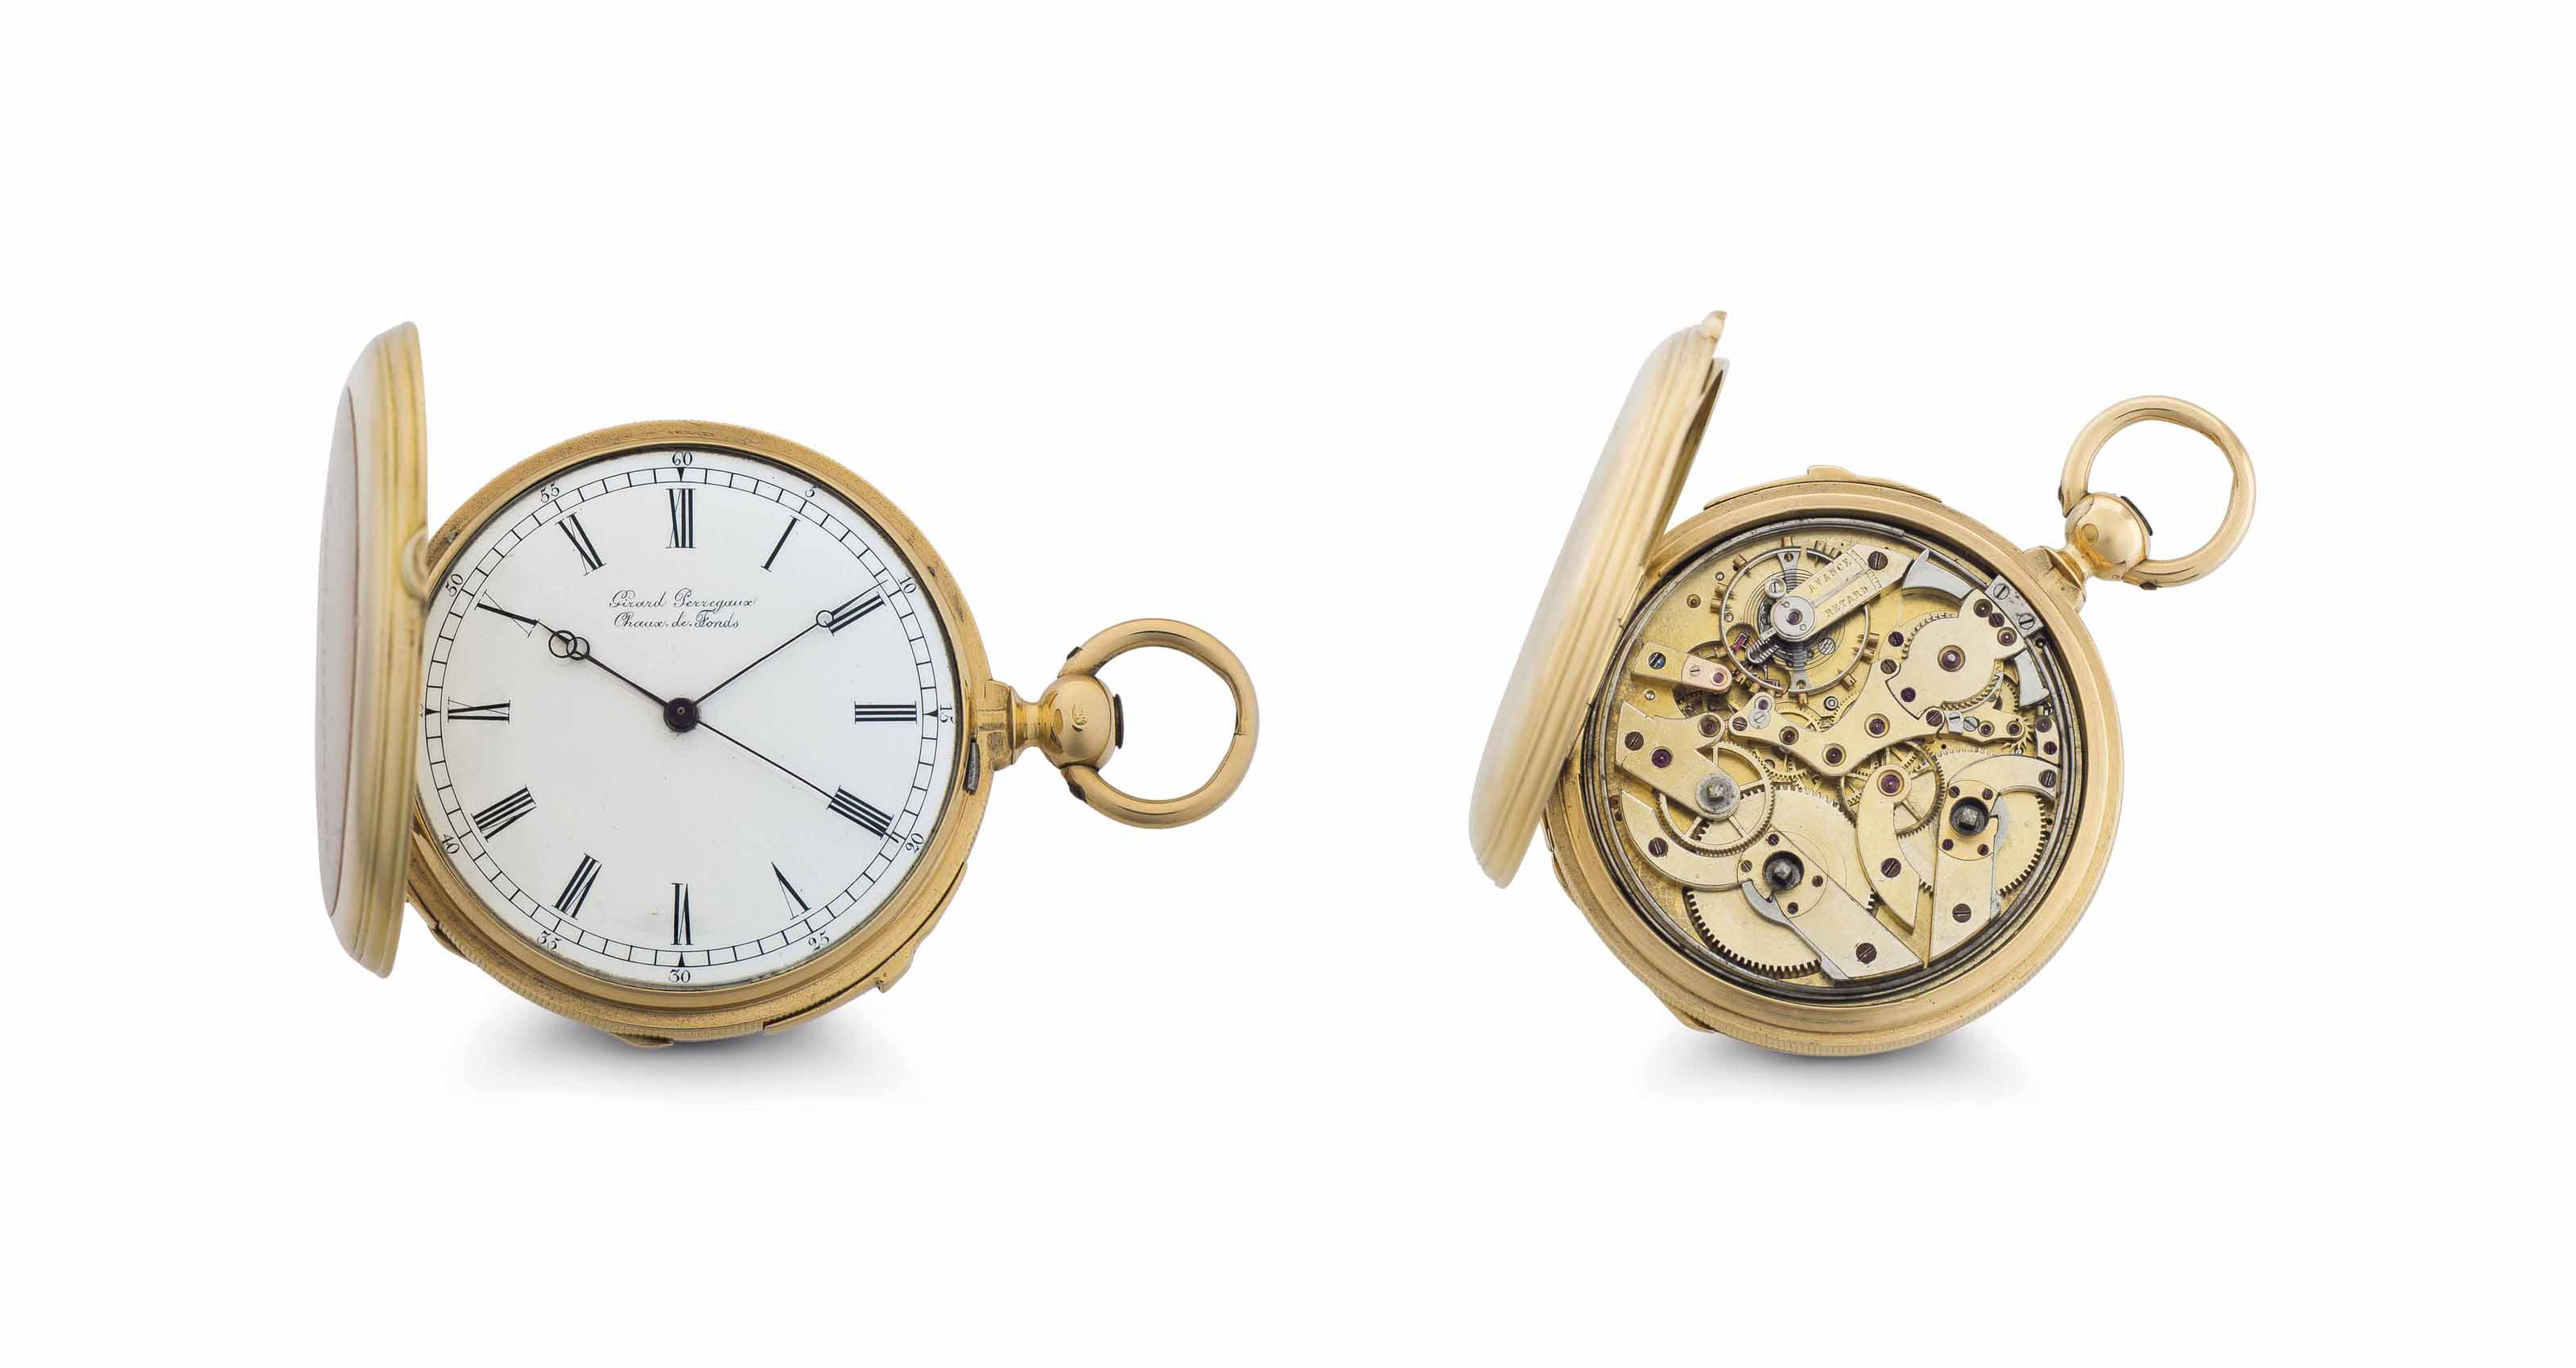 Girard Perregaux.  An 18k Gold Two-Train Quarter Repeating Hunter Case Keyless Lever Pocket Watch with Dead Independent Seconds